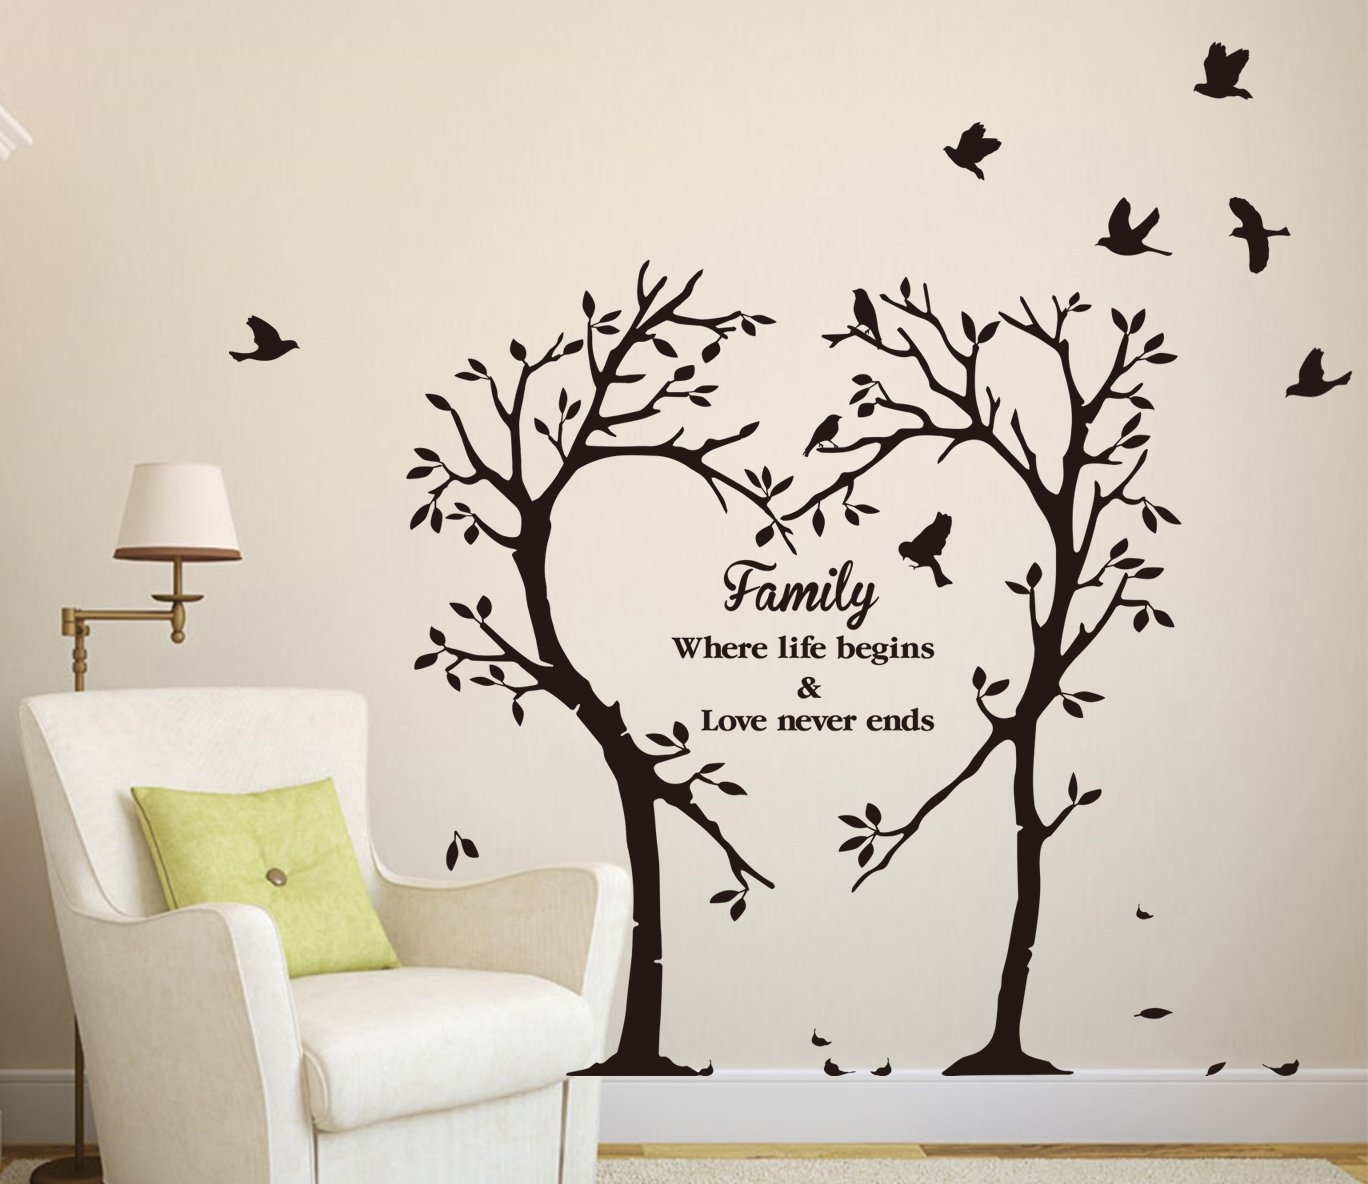 Large Family Inspirational Love Tree Wall Art Sticker, Wall Sticker Intended For Most Recent Wall Tree Art (View 9 of 20)